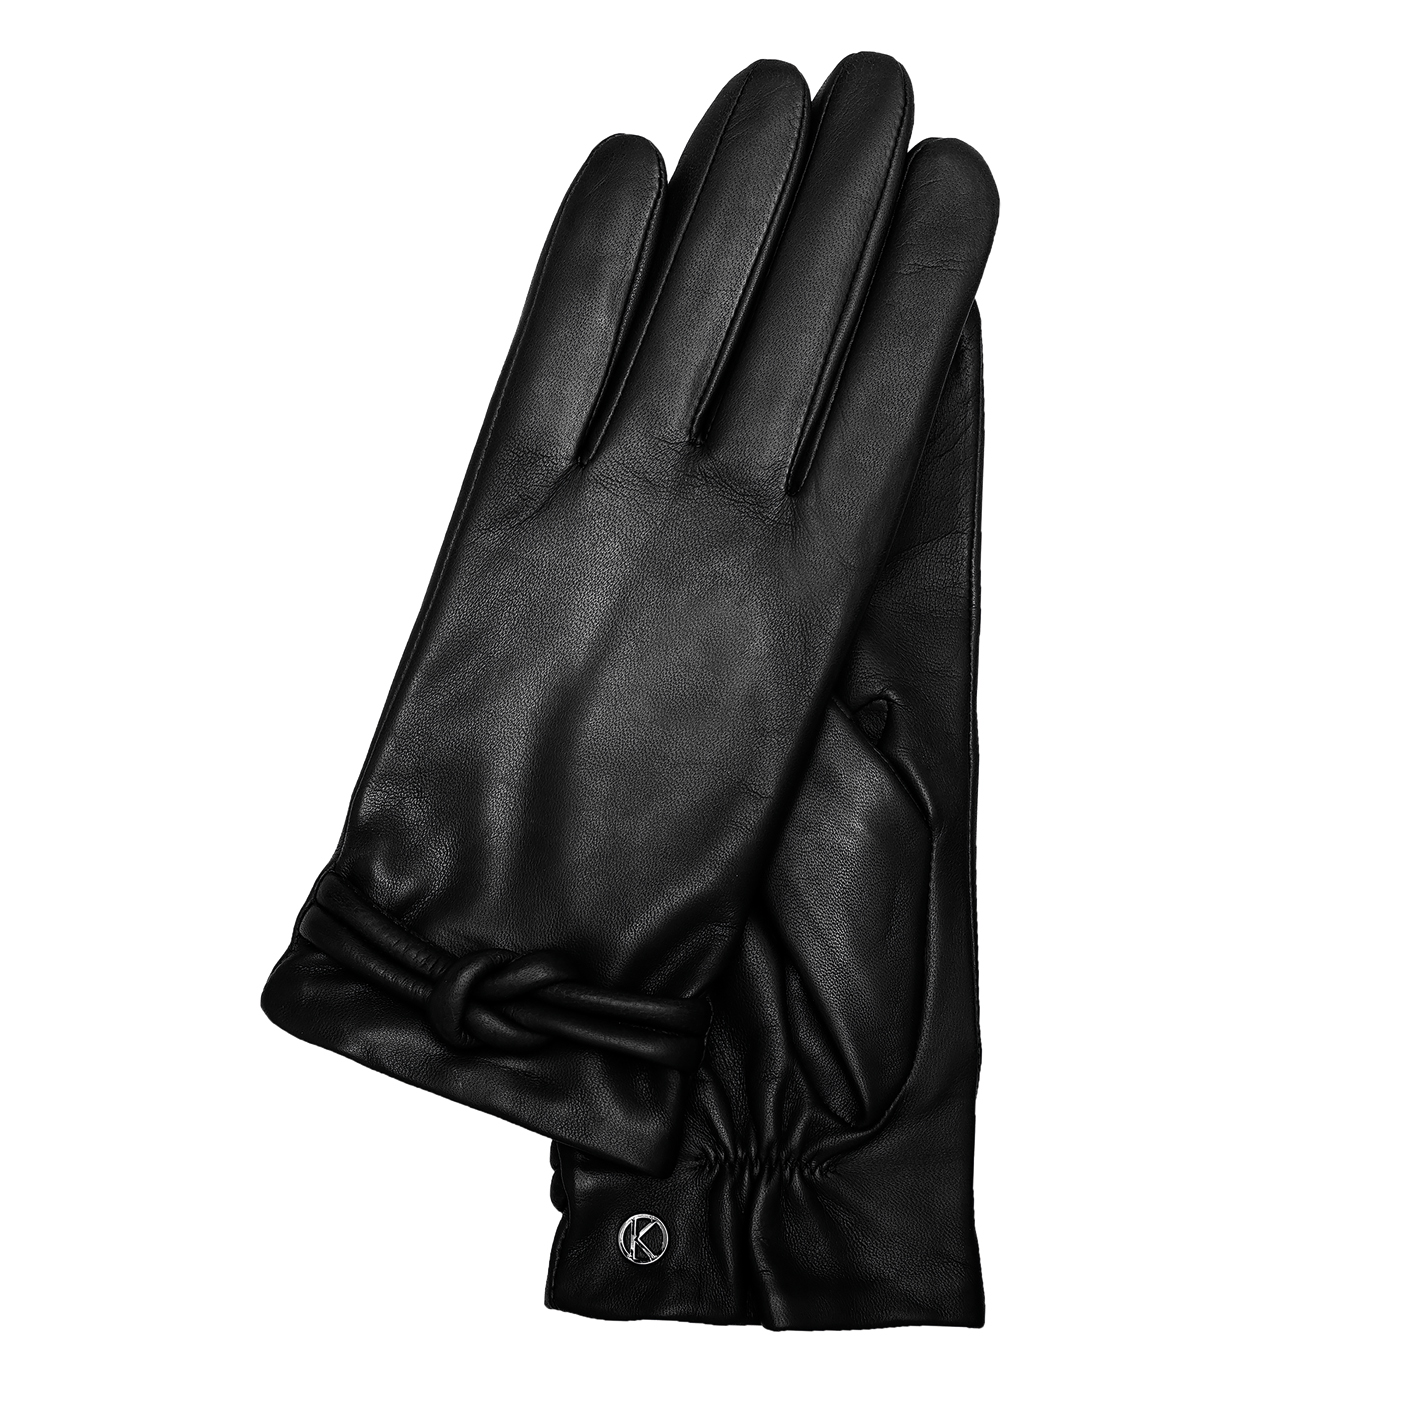 Olivia Touch001 black